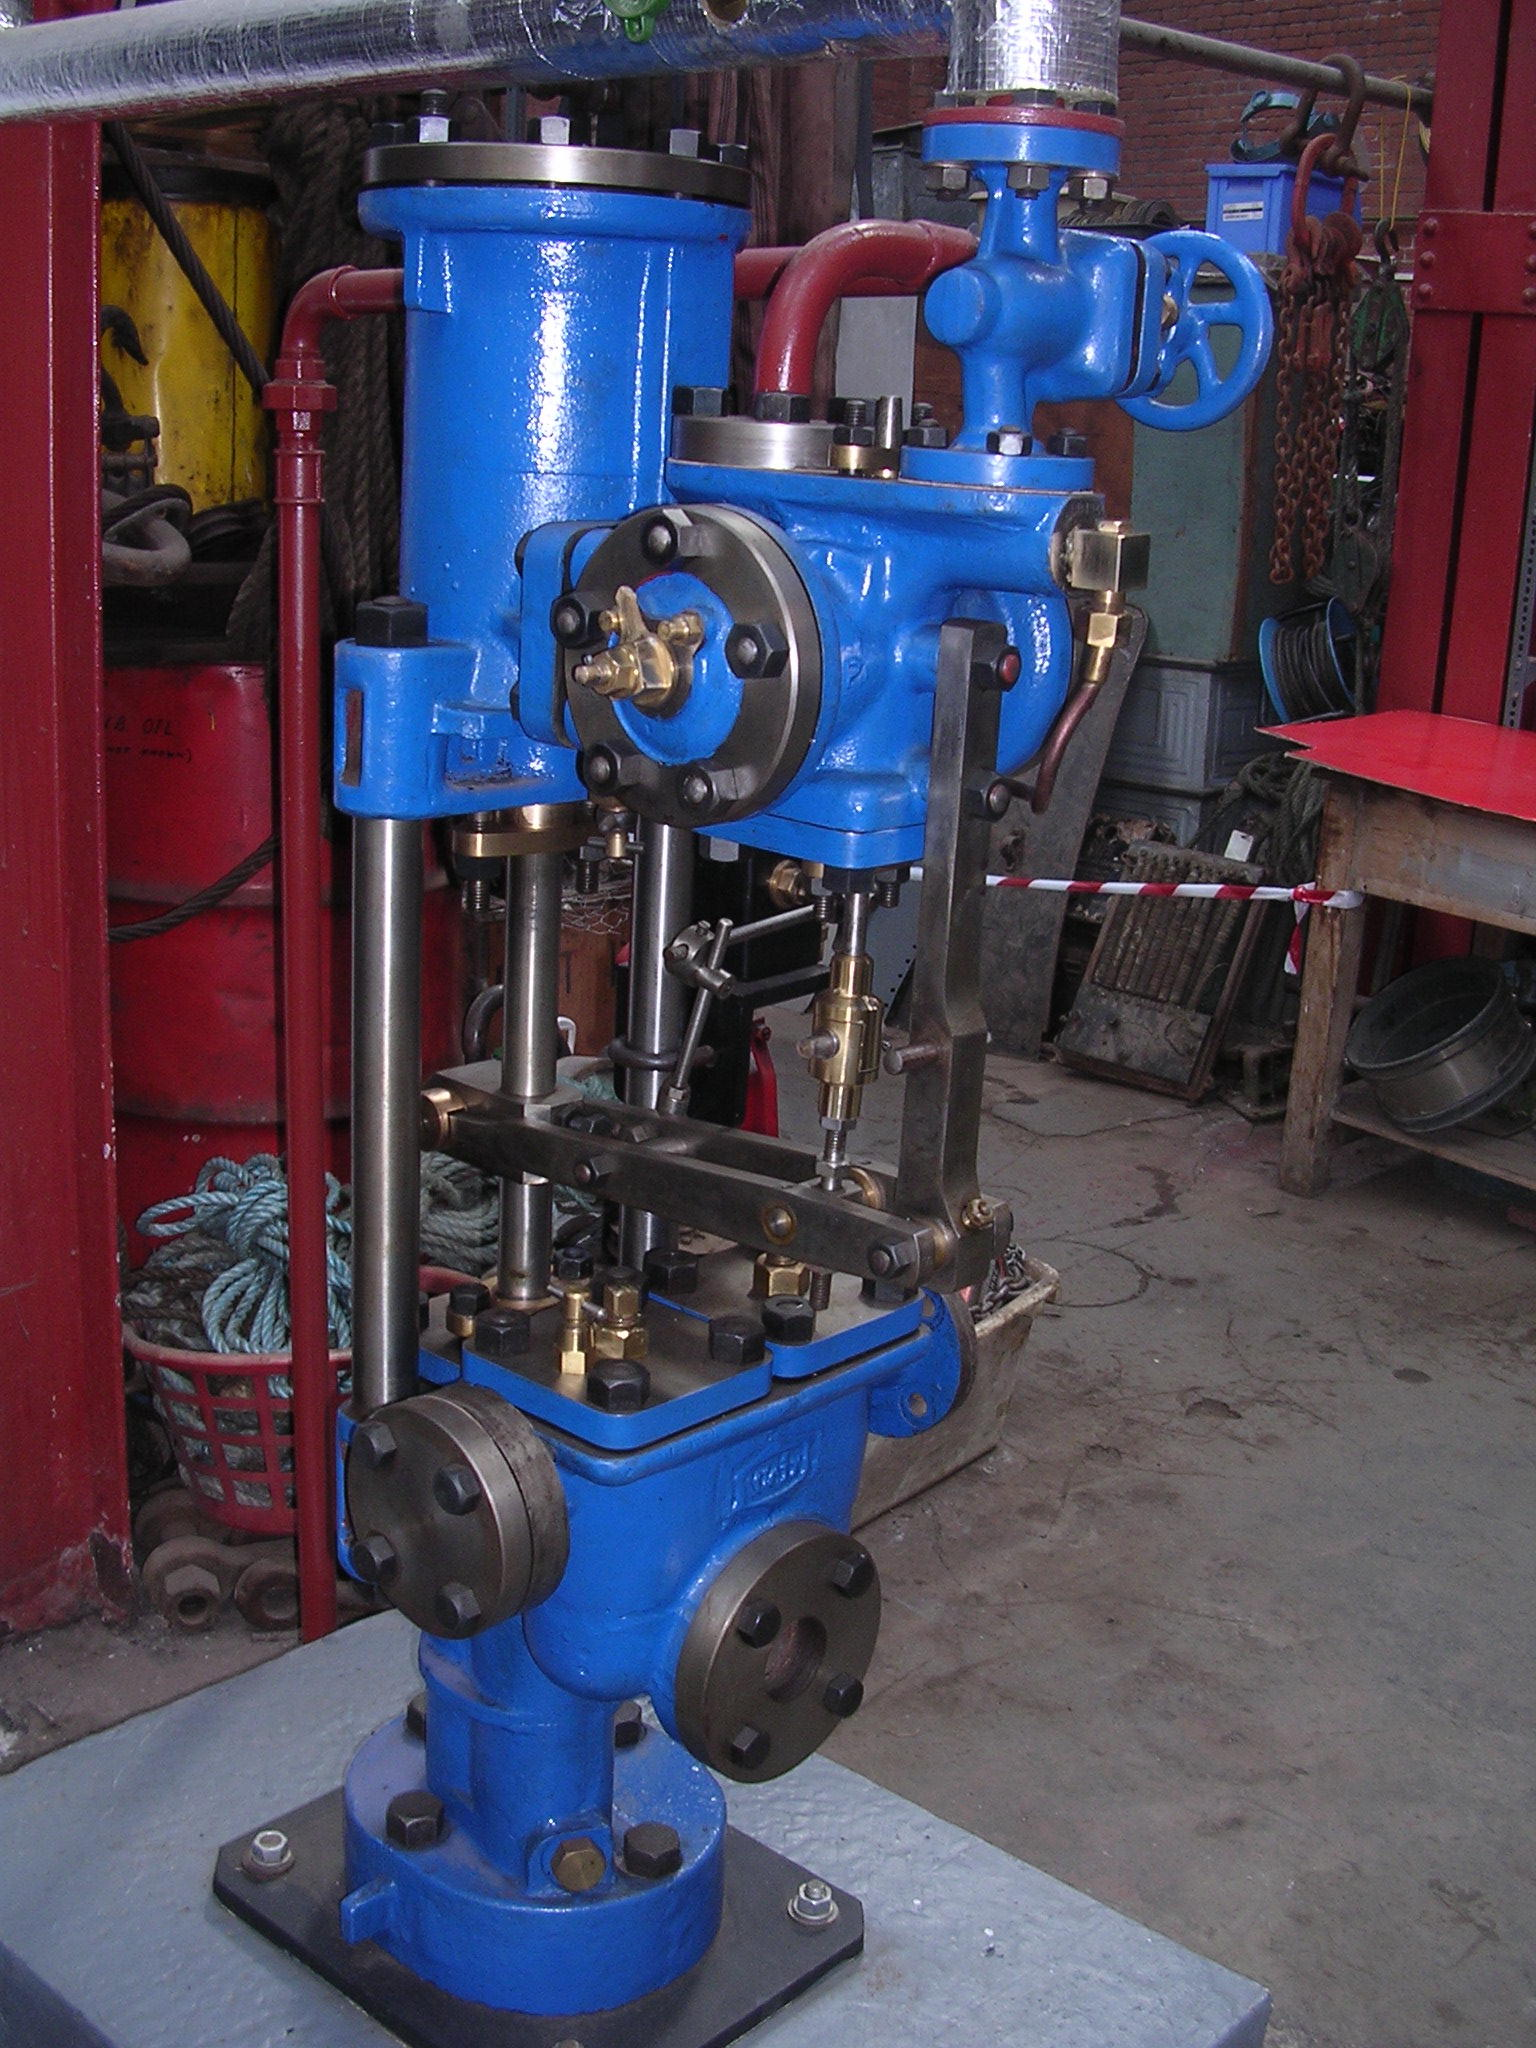 File Weir boiler feed water pump Wikimedia mons